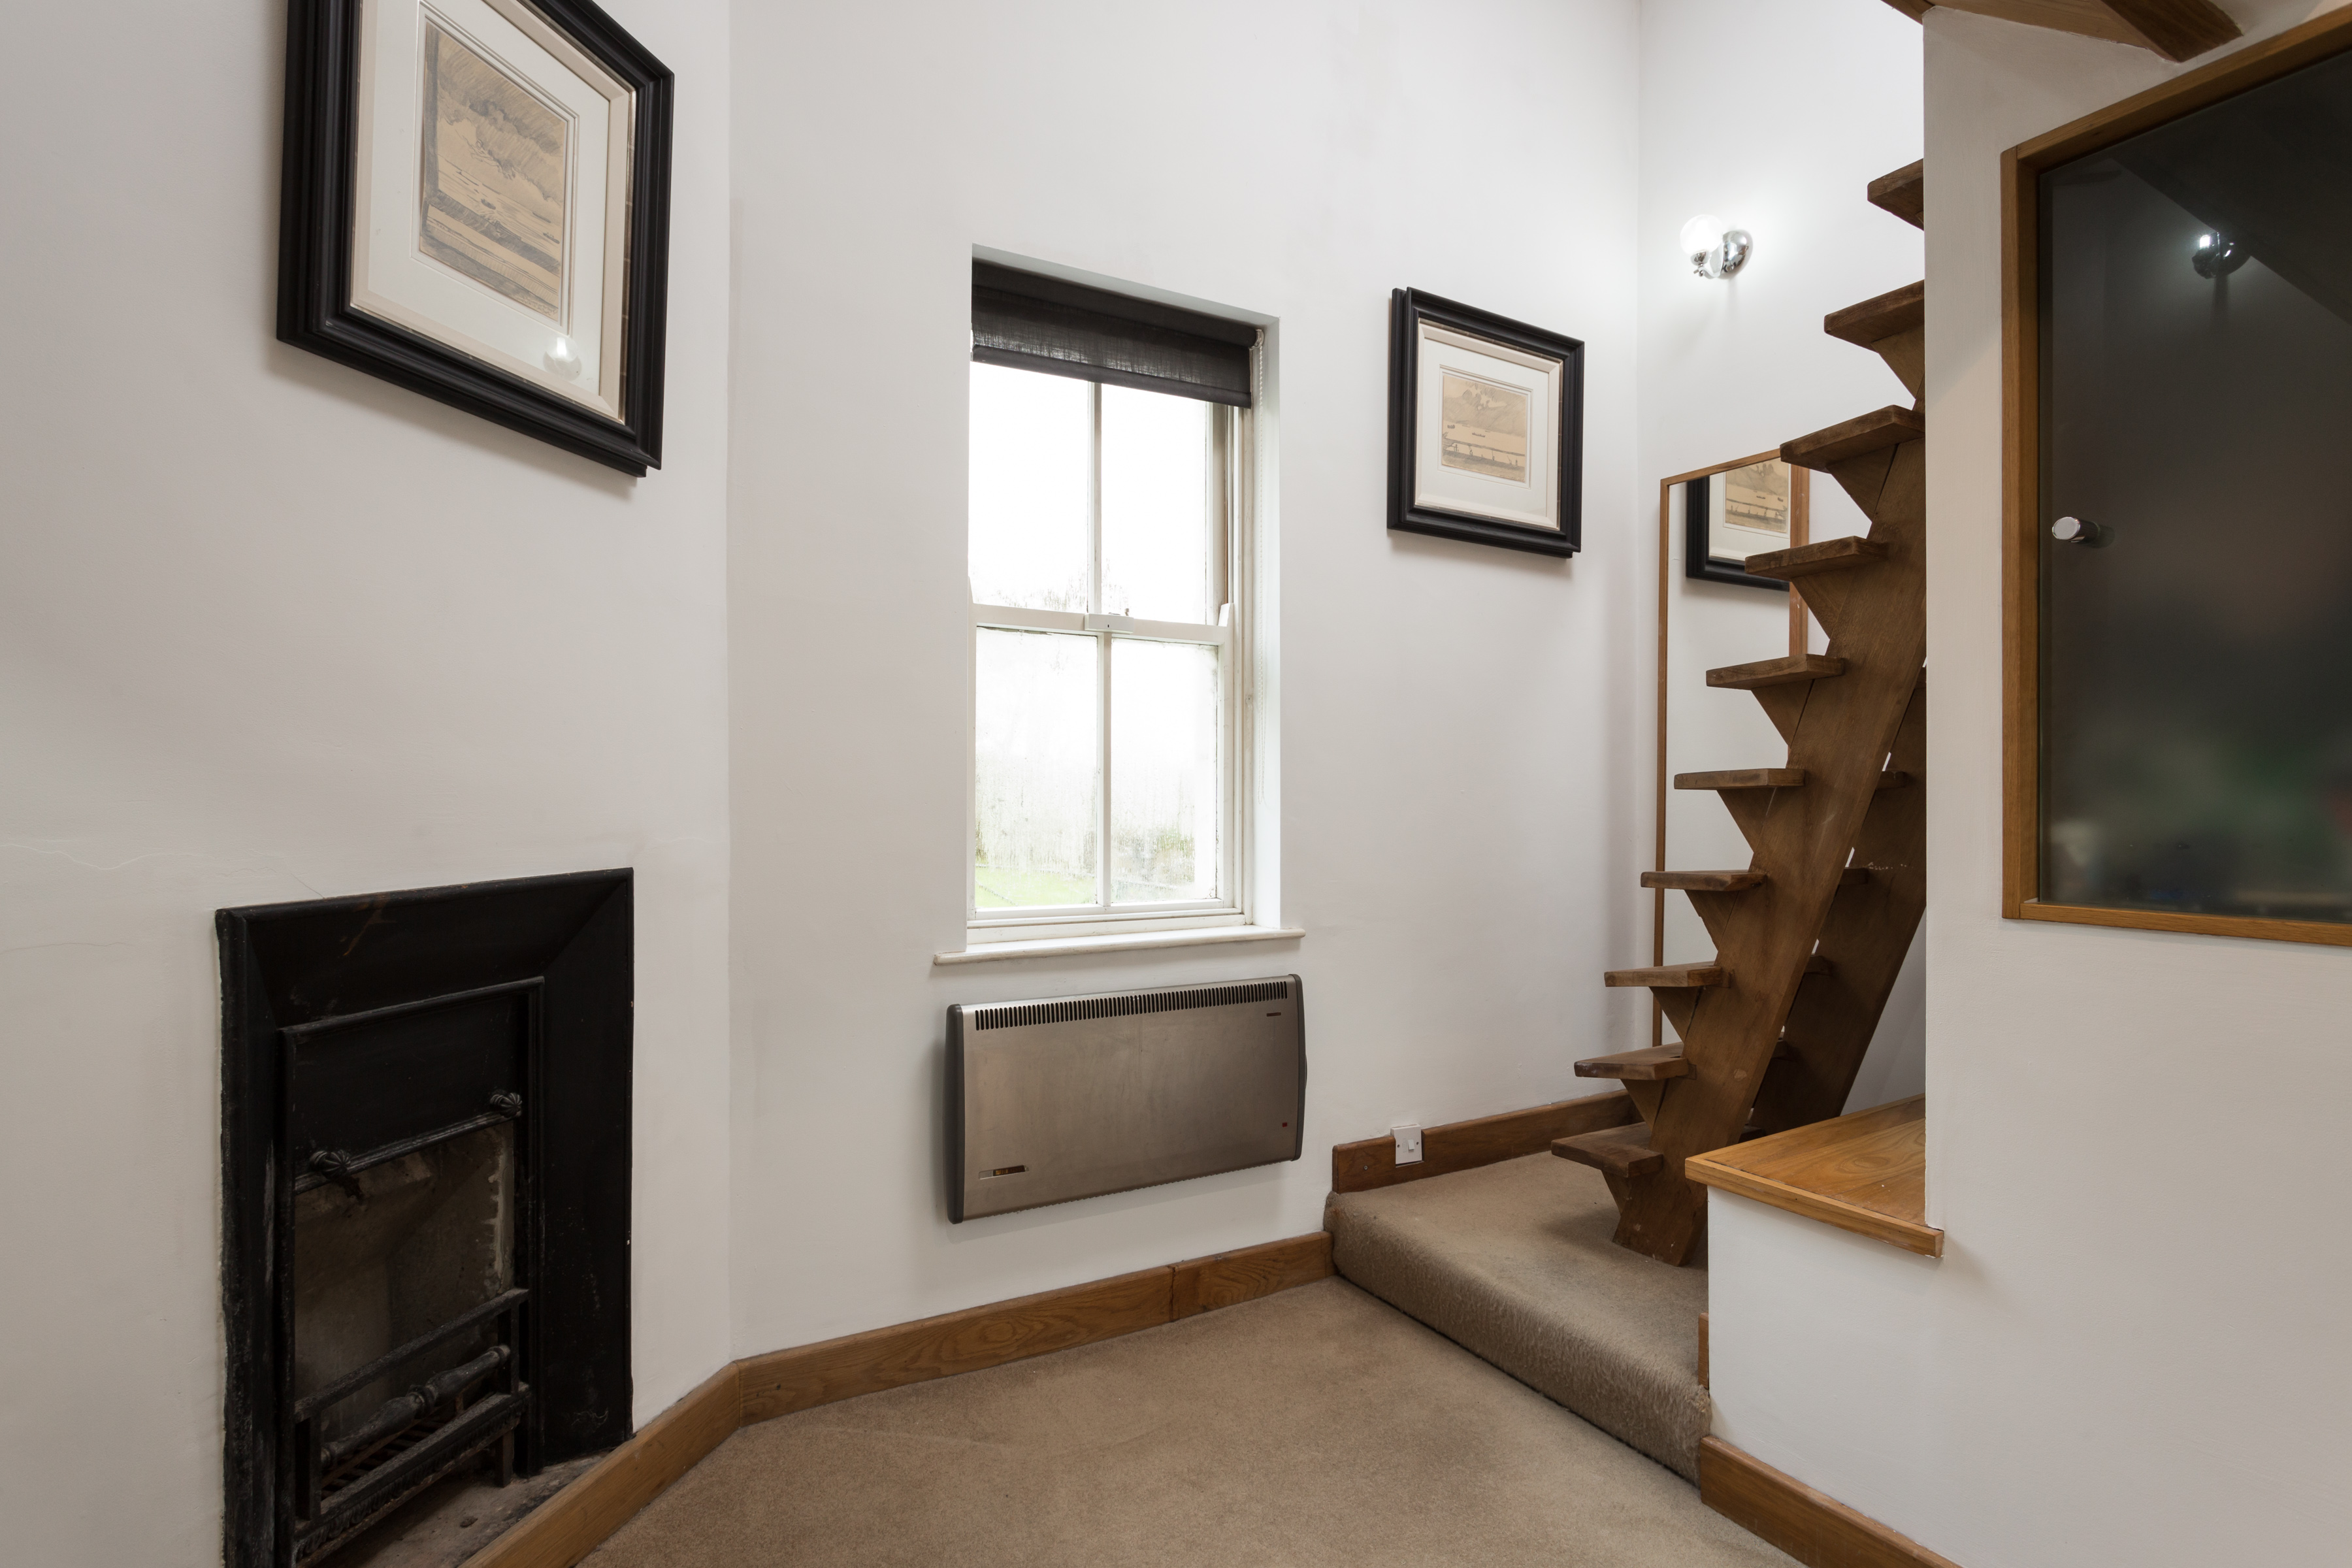 Stairs lead to a mezzanine level where there is a double bed